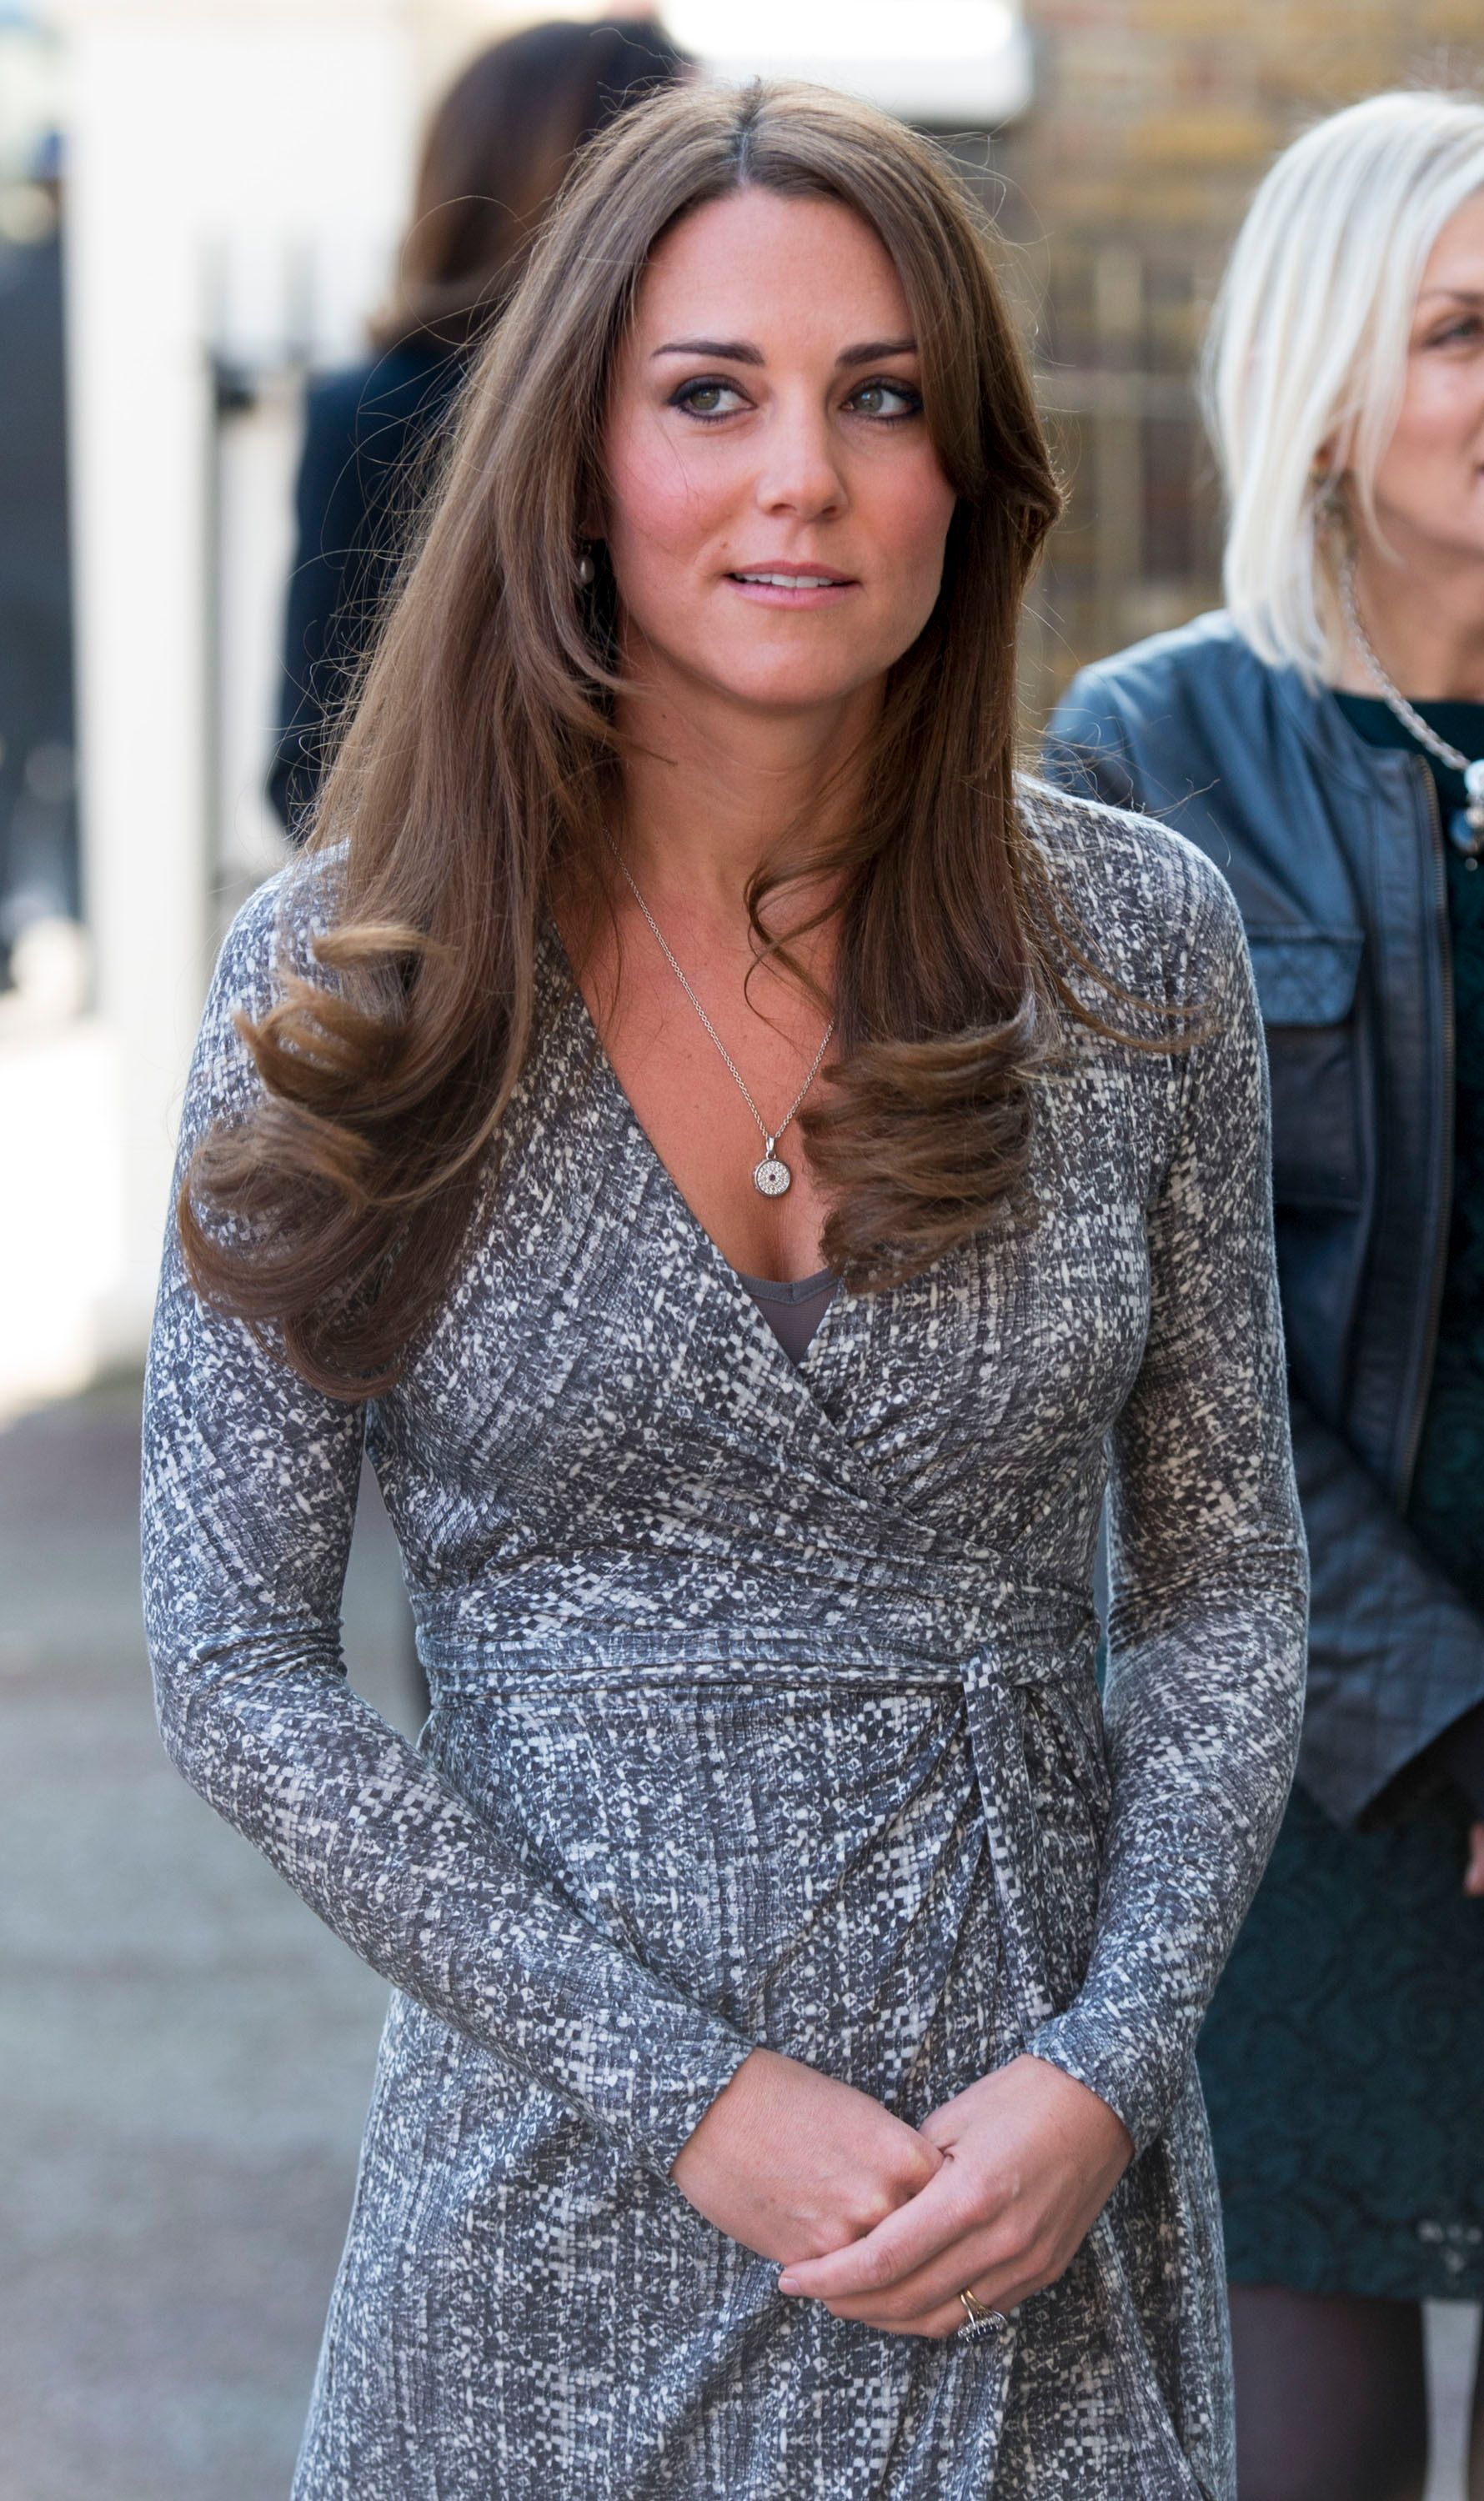 Duchess Kate visits Hope House, an Action on Addiction women's treatment center on February 19, 2013, in London, England | Photo: Mark Cuthbert/UK Press/Getty Images